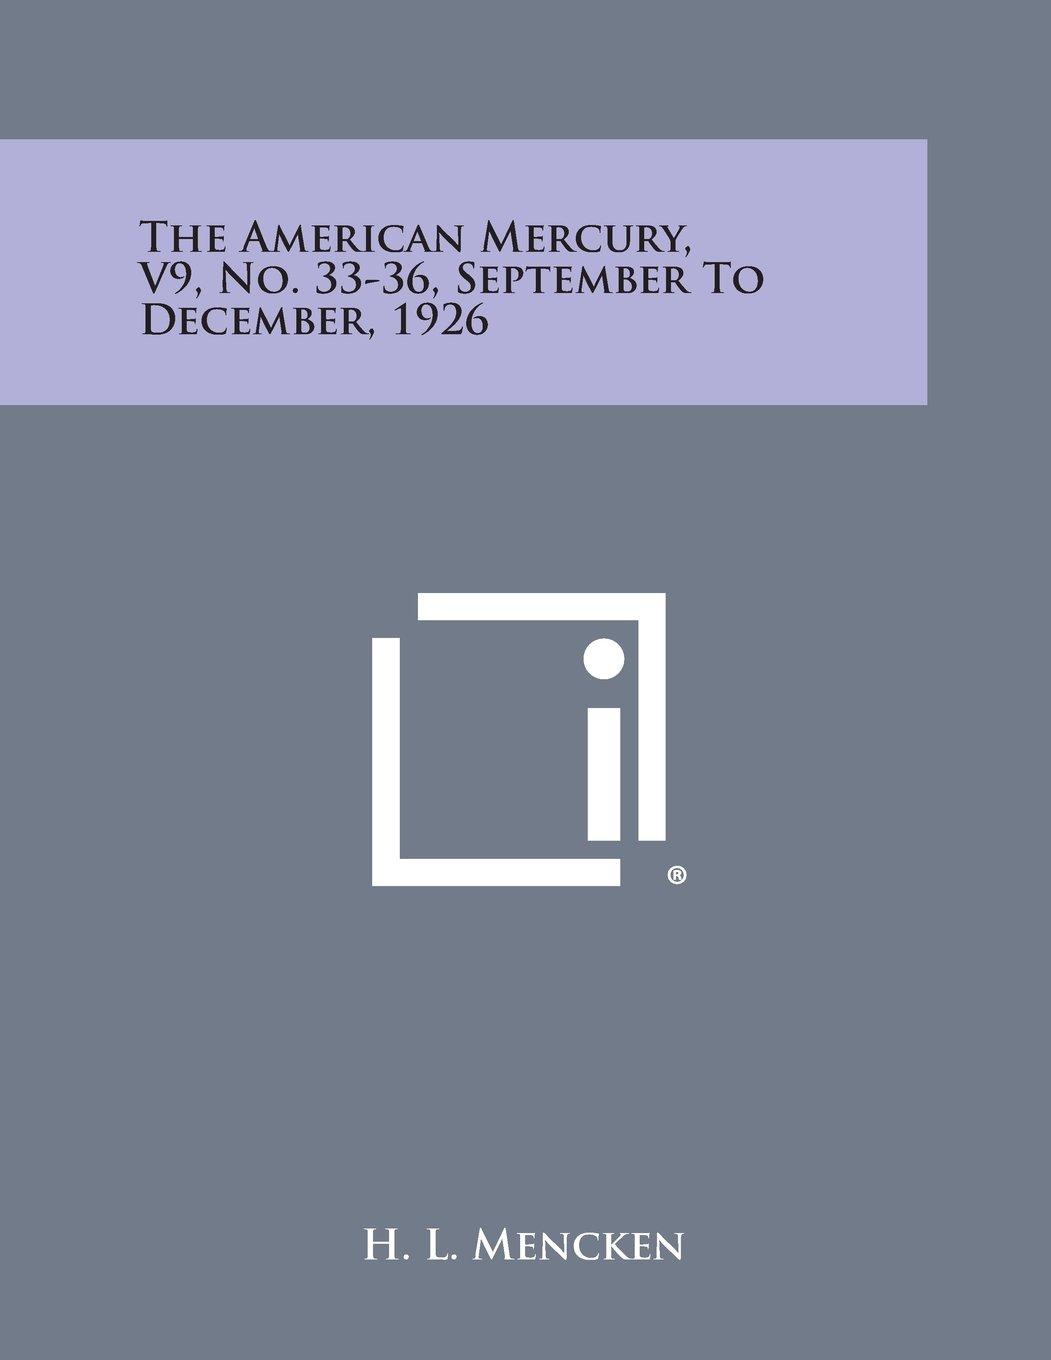 The American Mercury, V9, No. 33-36, September to December, 1926 PDF